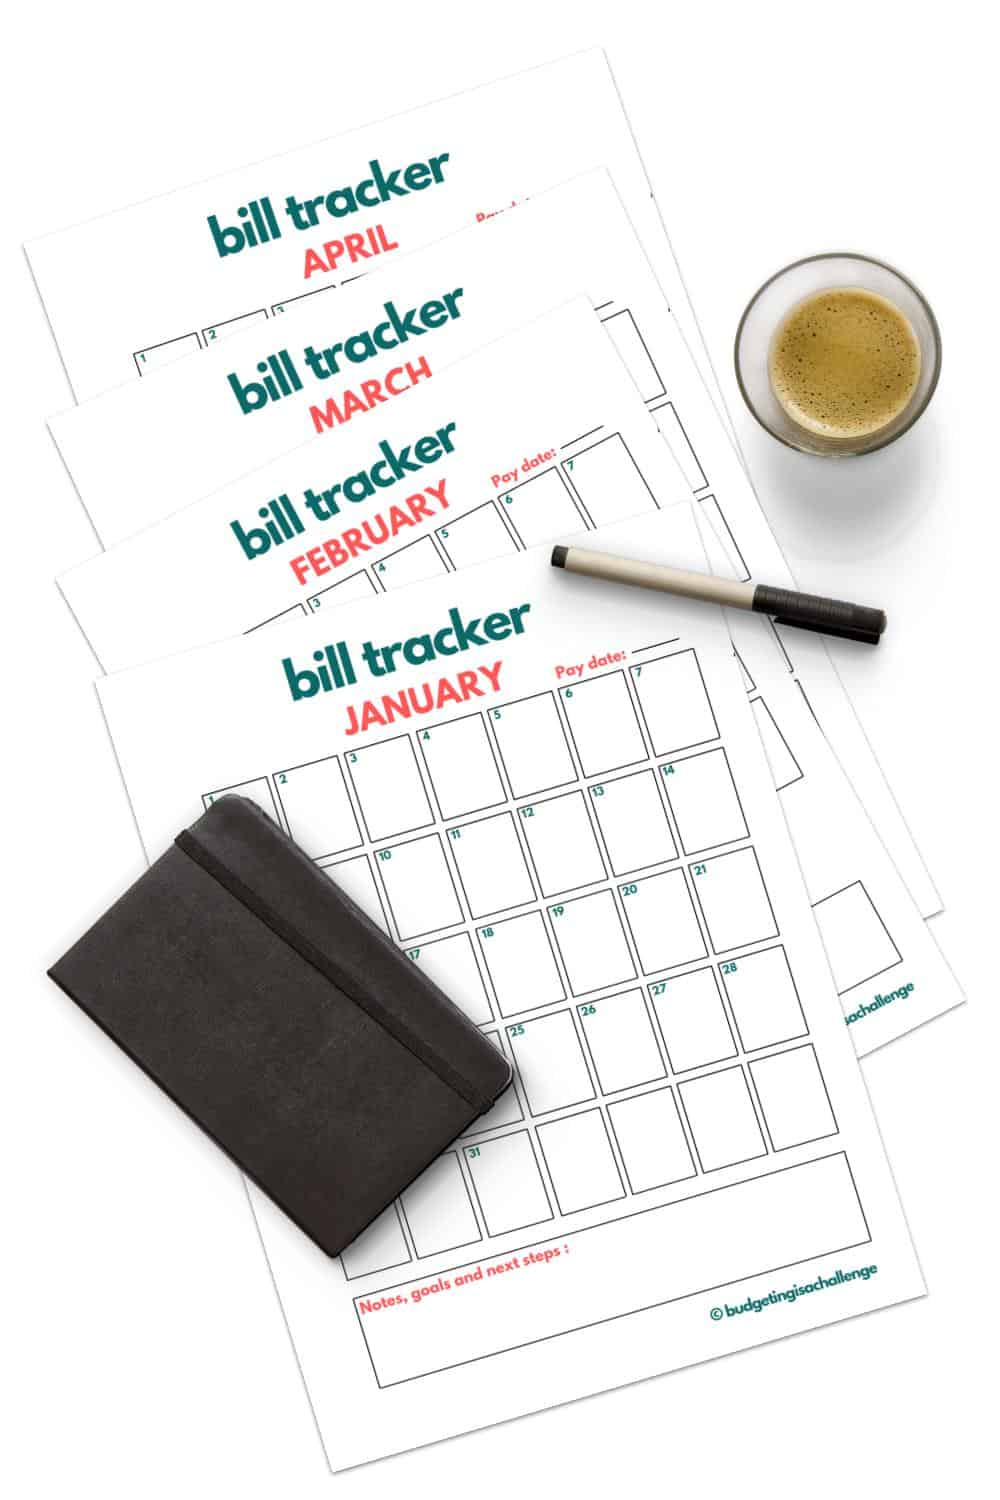 Do you need to track your monthly expenses? Save money with my monthly bill tracker.